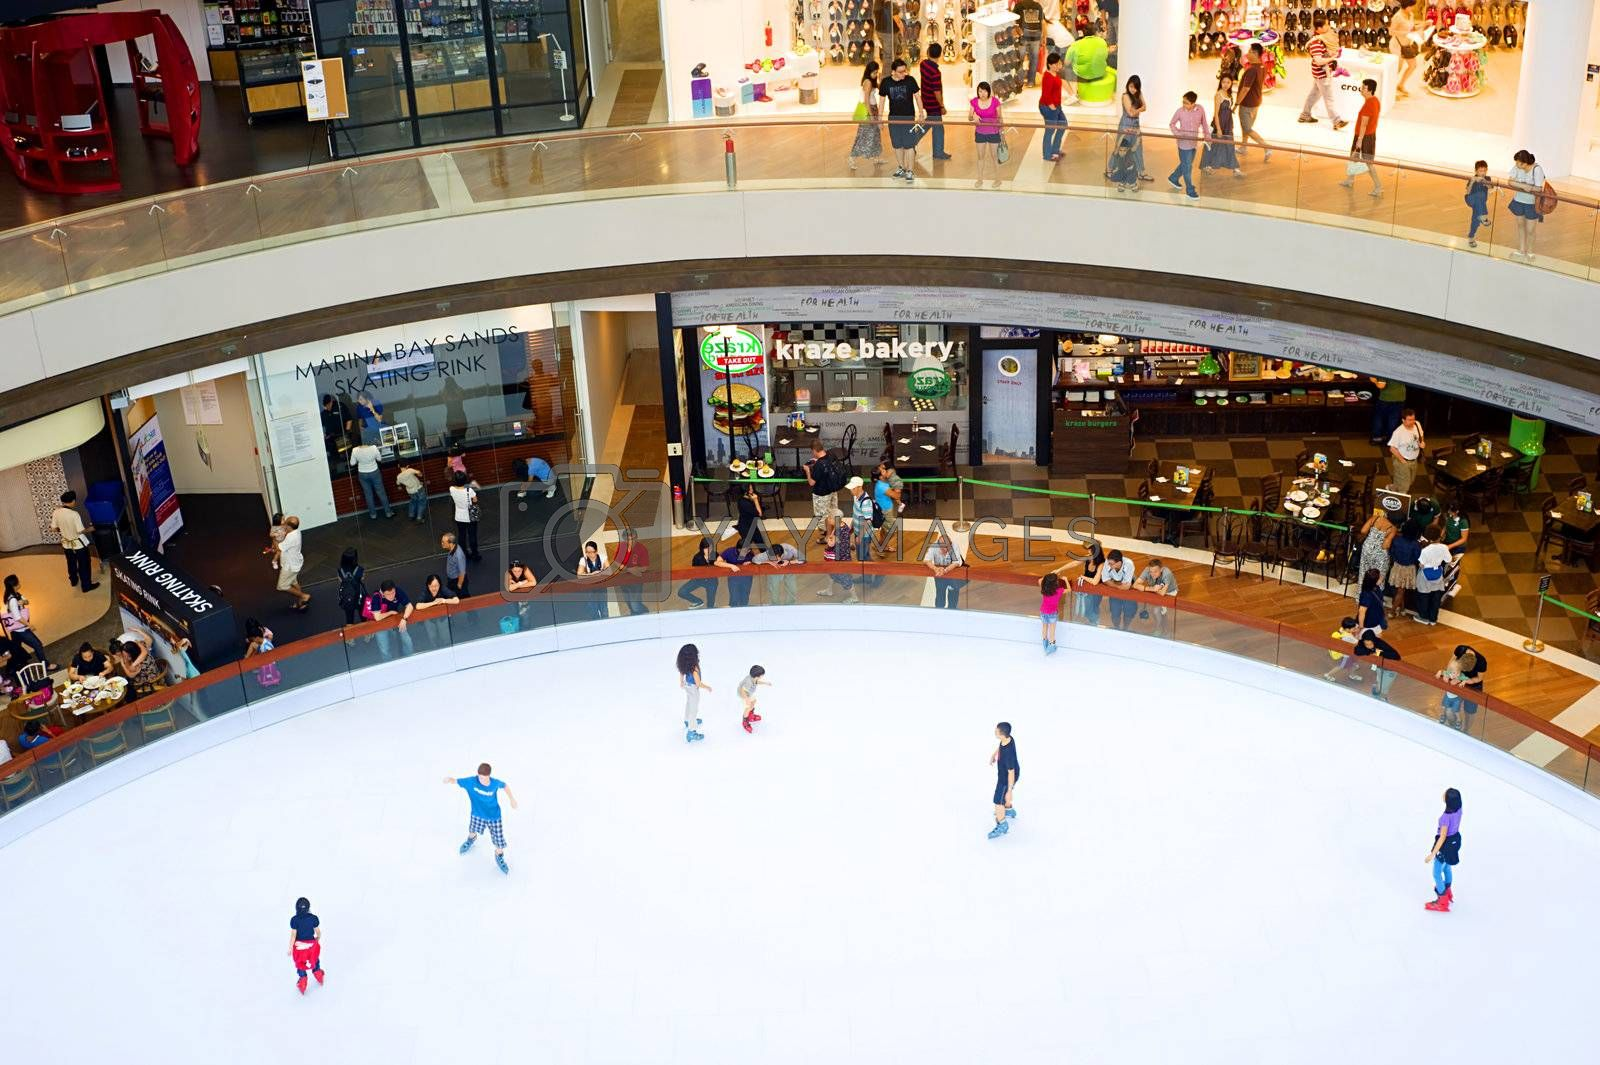 Singapore, Republic of Singapore - May 02, 2011: Sky rink in a shopping centre at Marina Bay Sands Resort